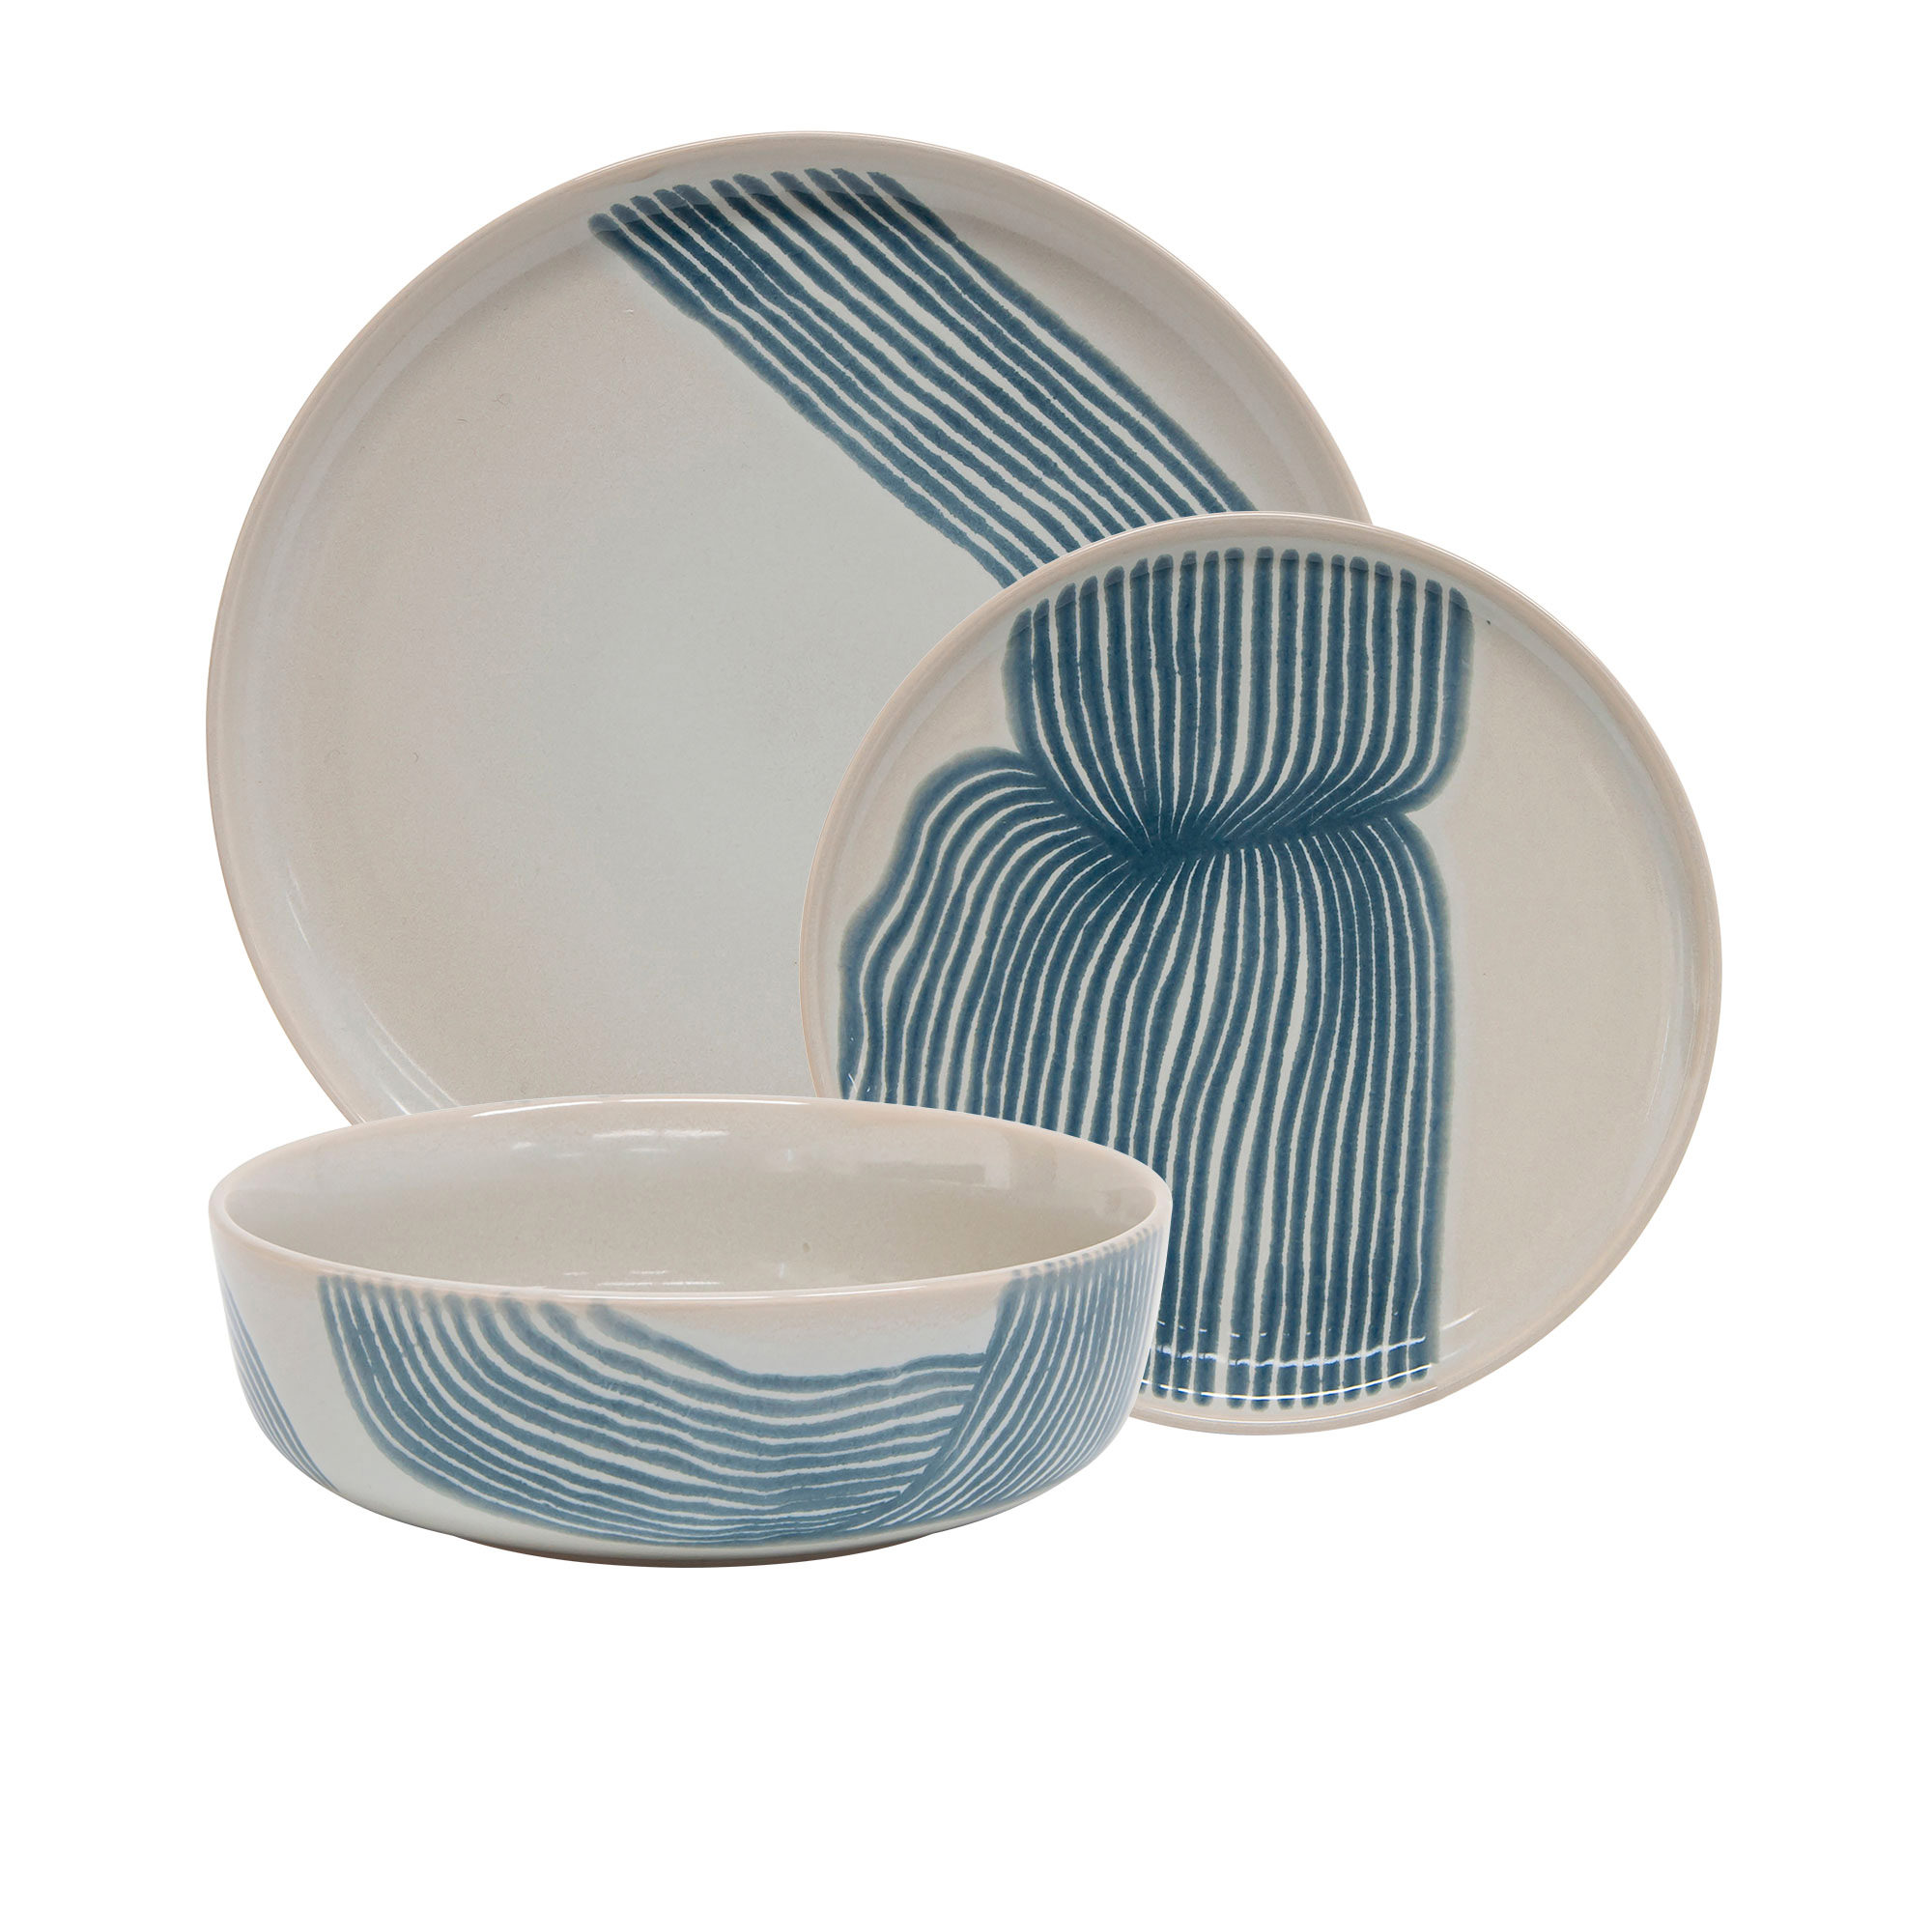 Salt & Pepper Sketch 12pc Dinner Set Blue